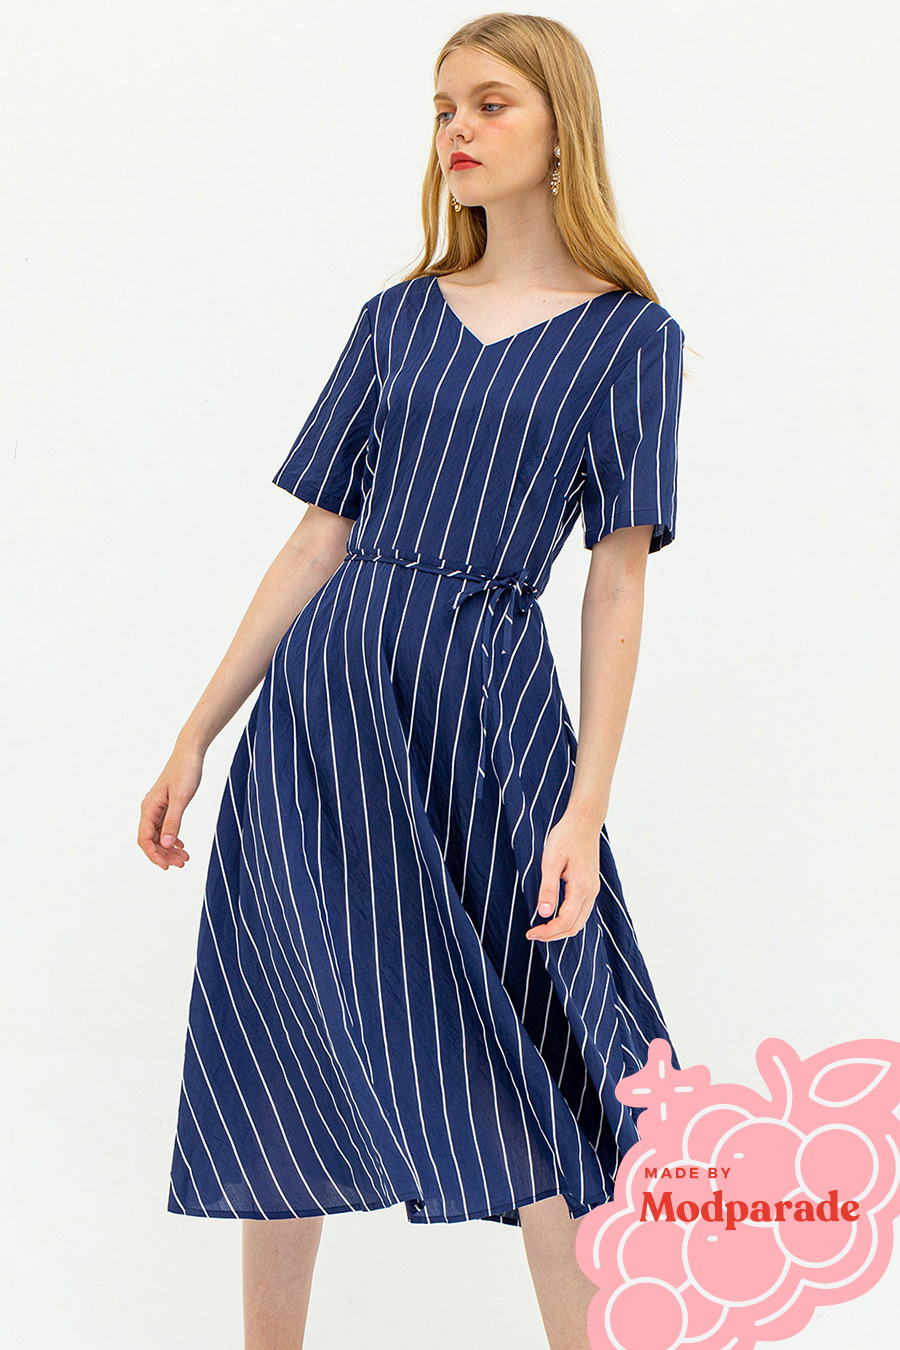 DAHLIA DRESS - MIDNIGHT STRIPE [BY MODPARADE]